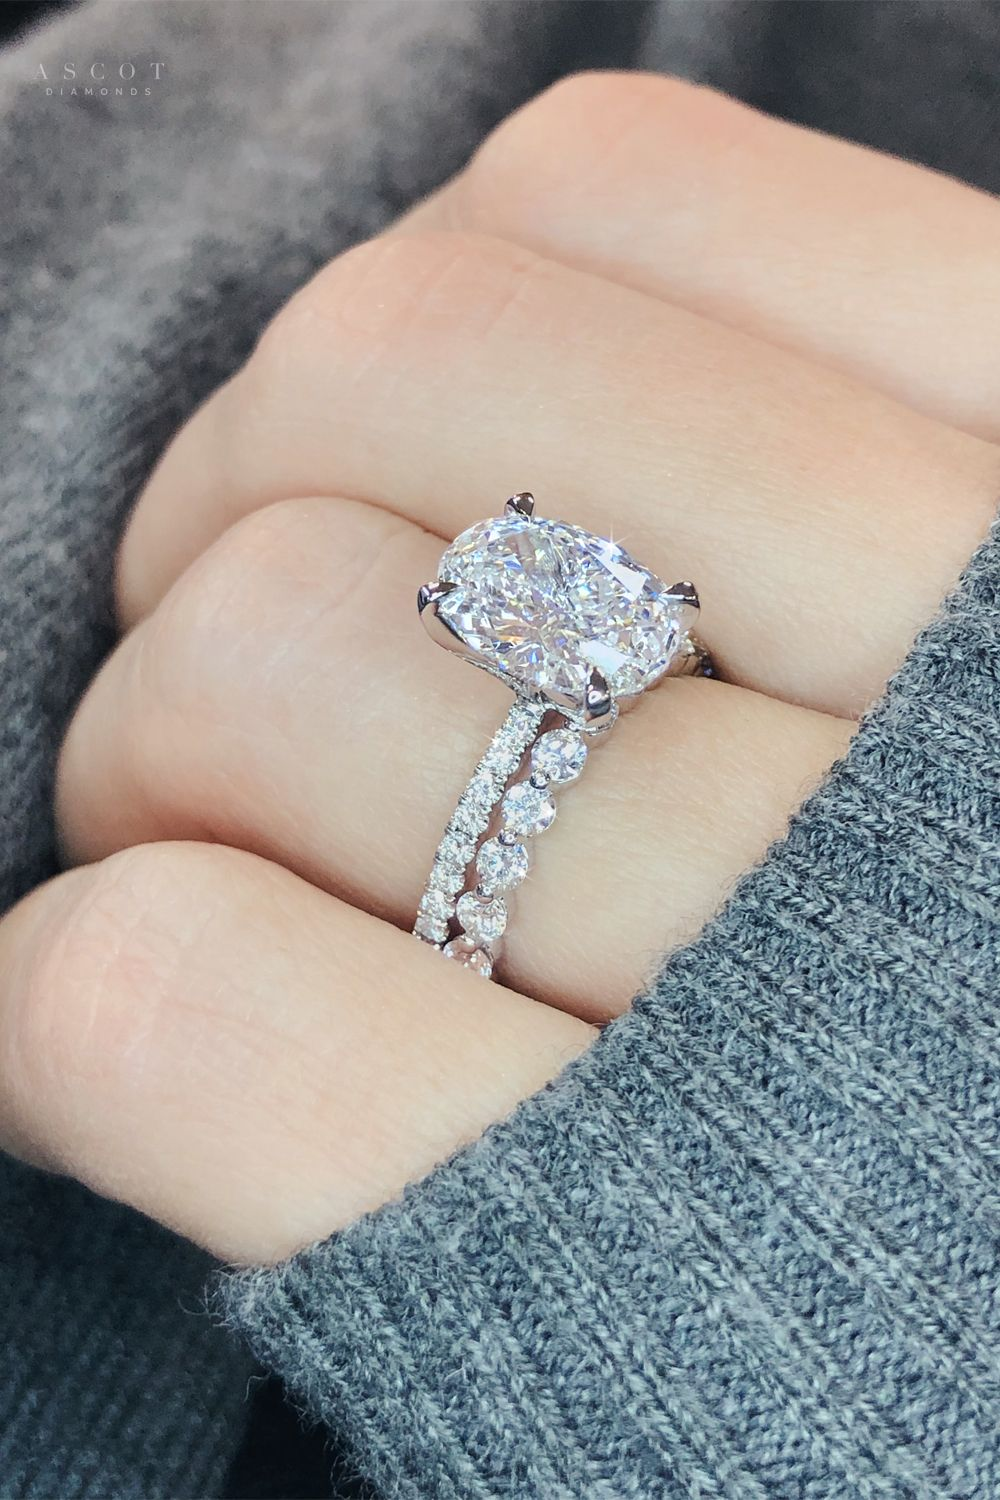 In ���� ️ with this Oval Cut Diamond Ring and Eternity Diamond Band - Ascot Diamonds